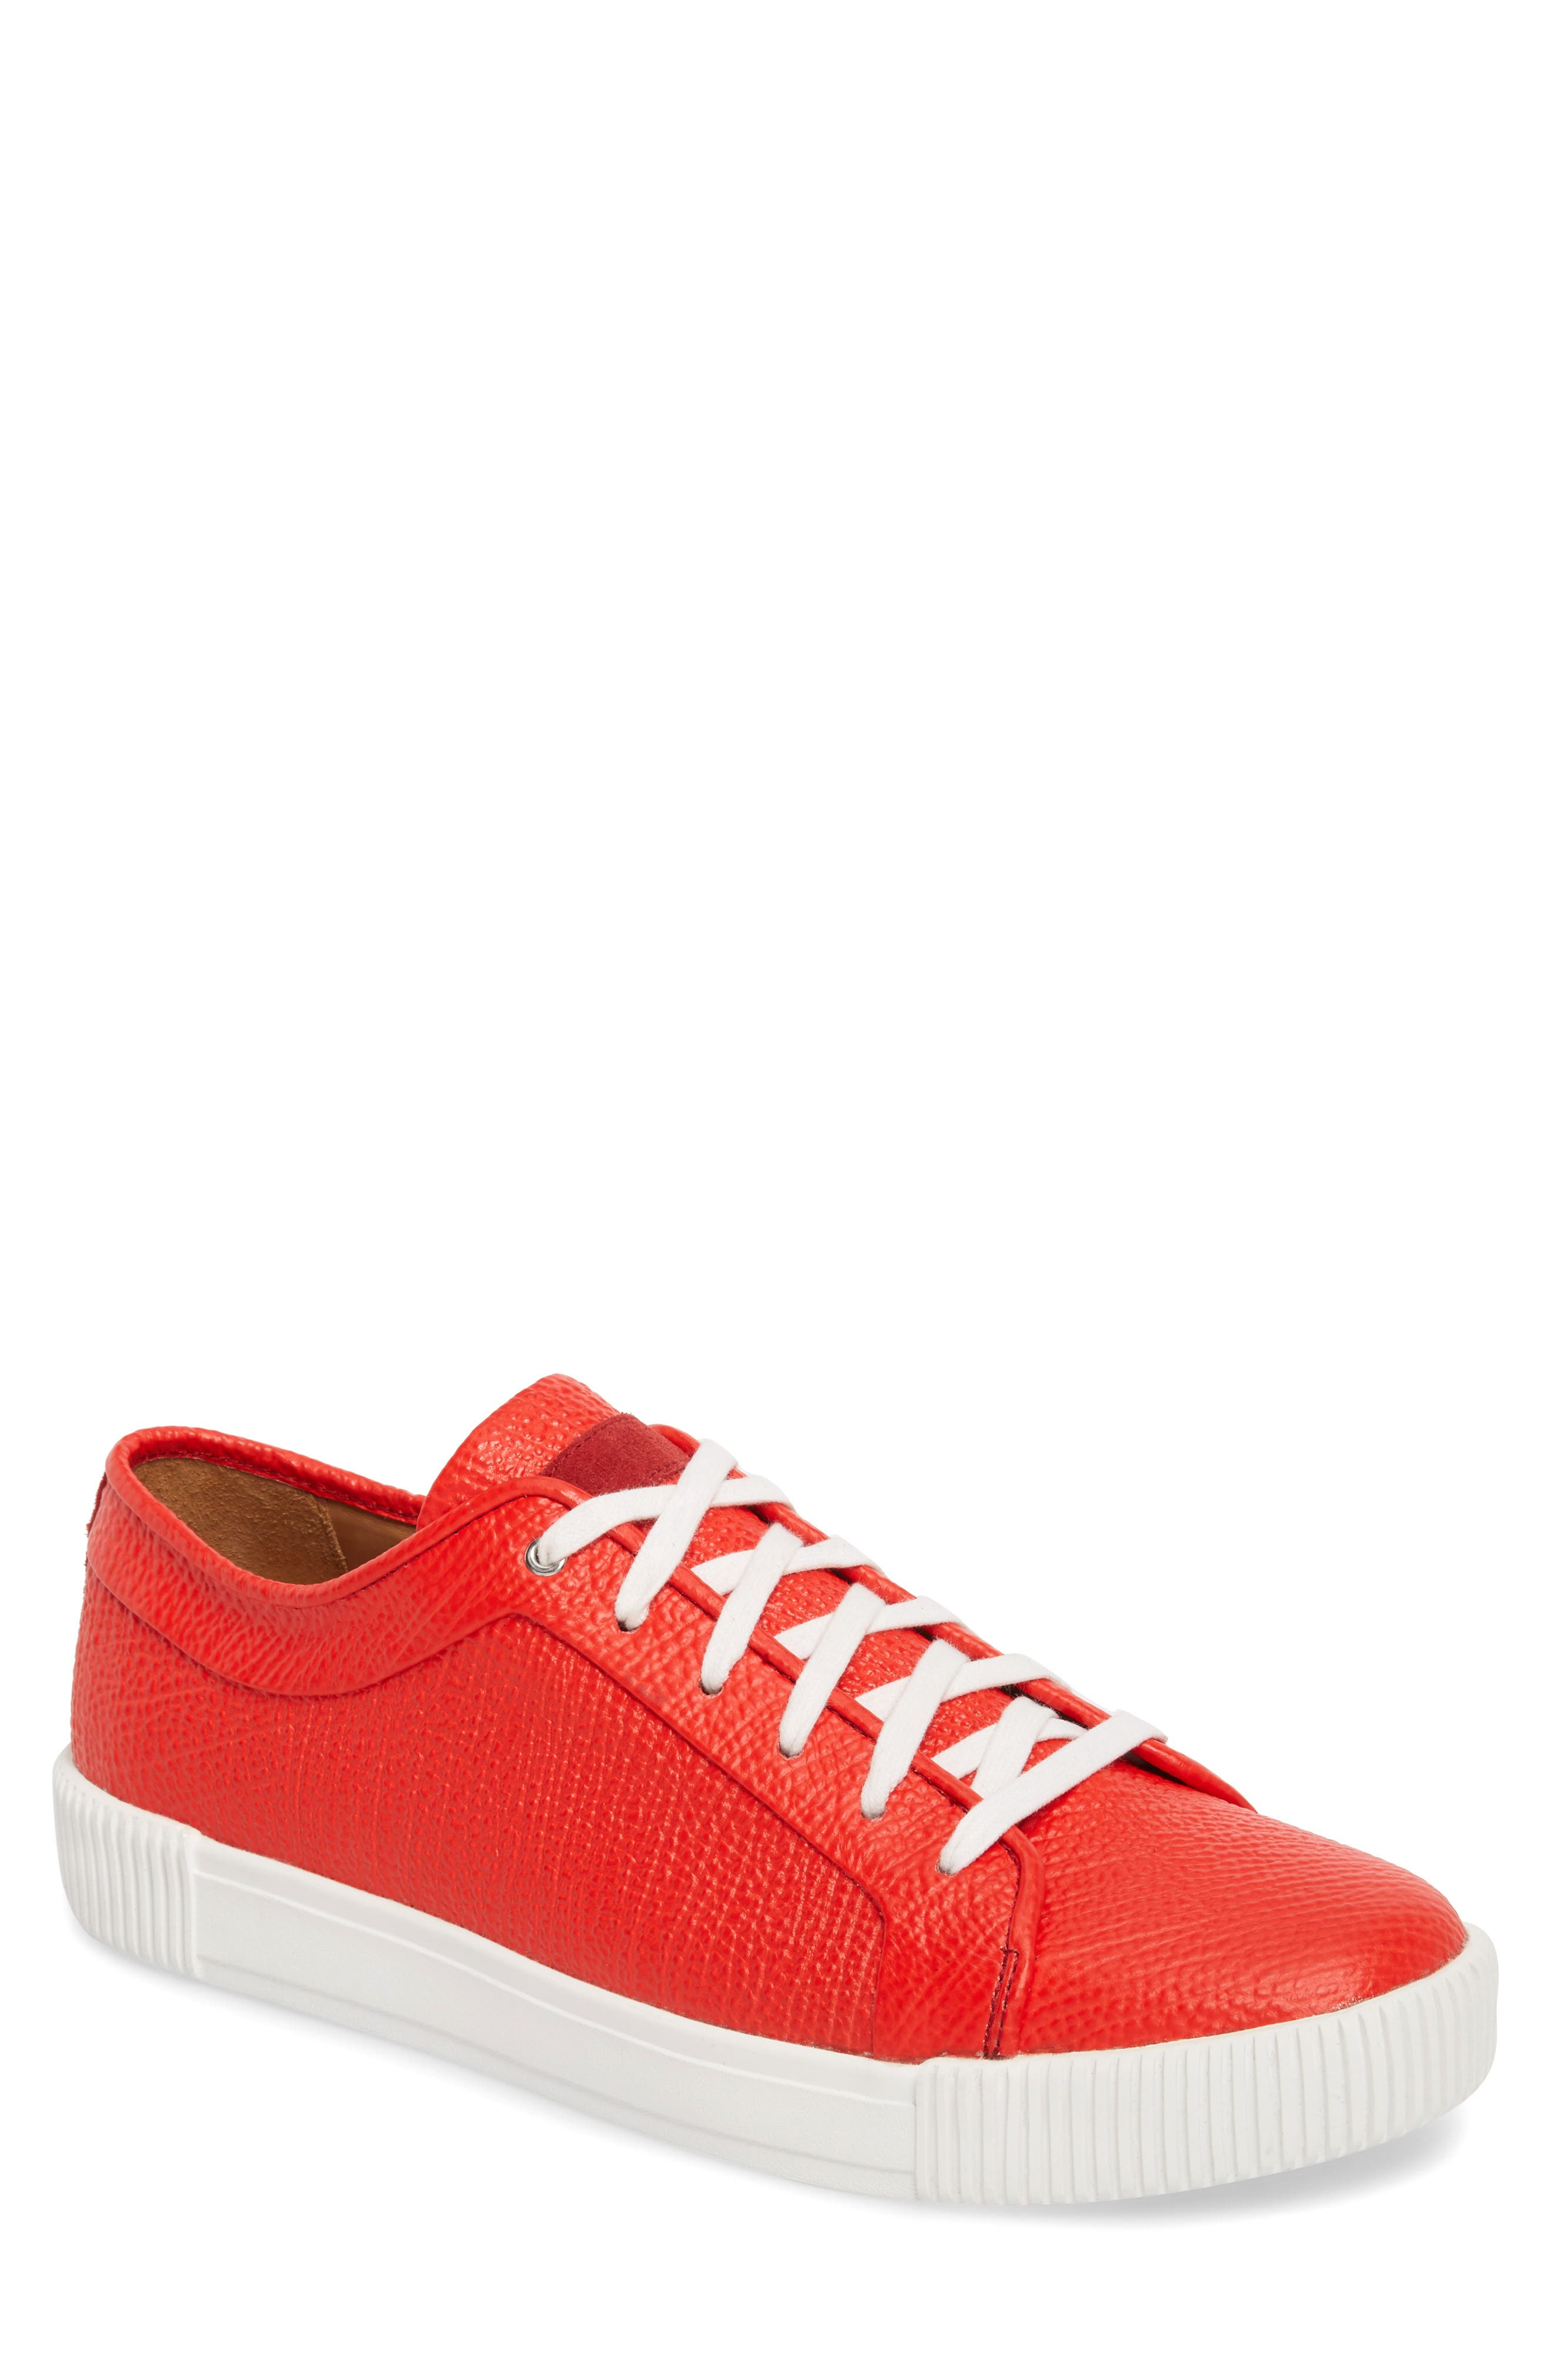 Lyons Low Top Sneaker,                             Main thumbnail 1, color,                             Red Leather